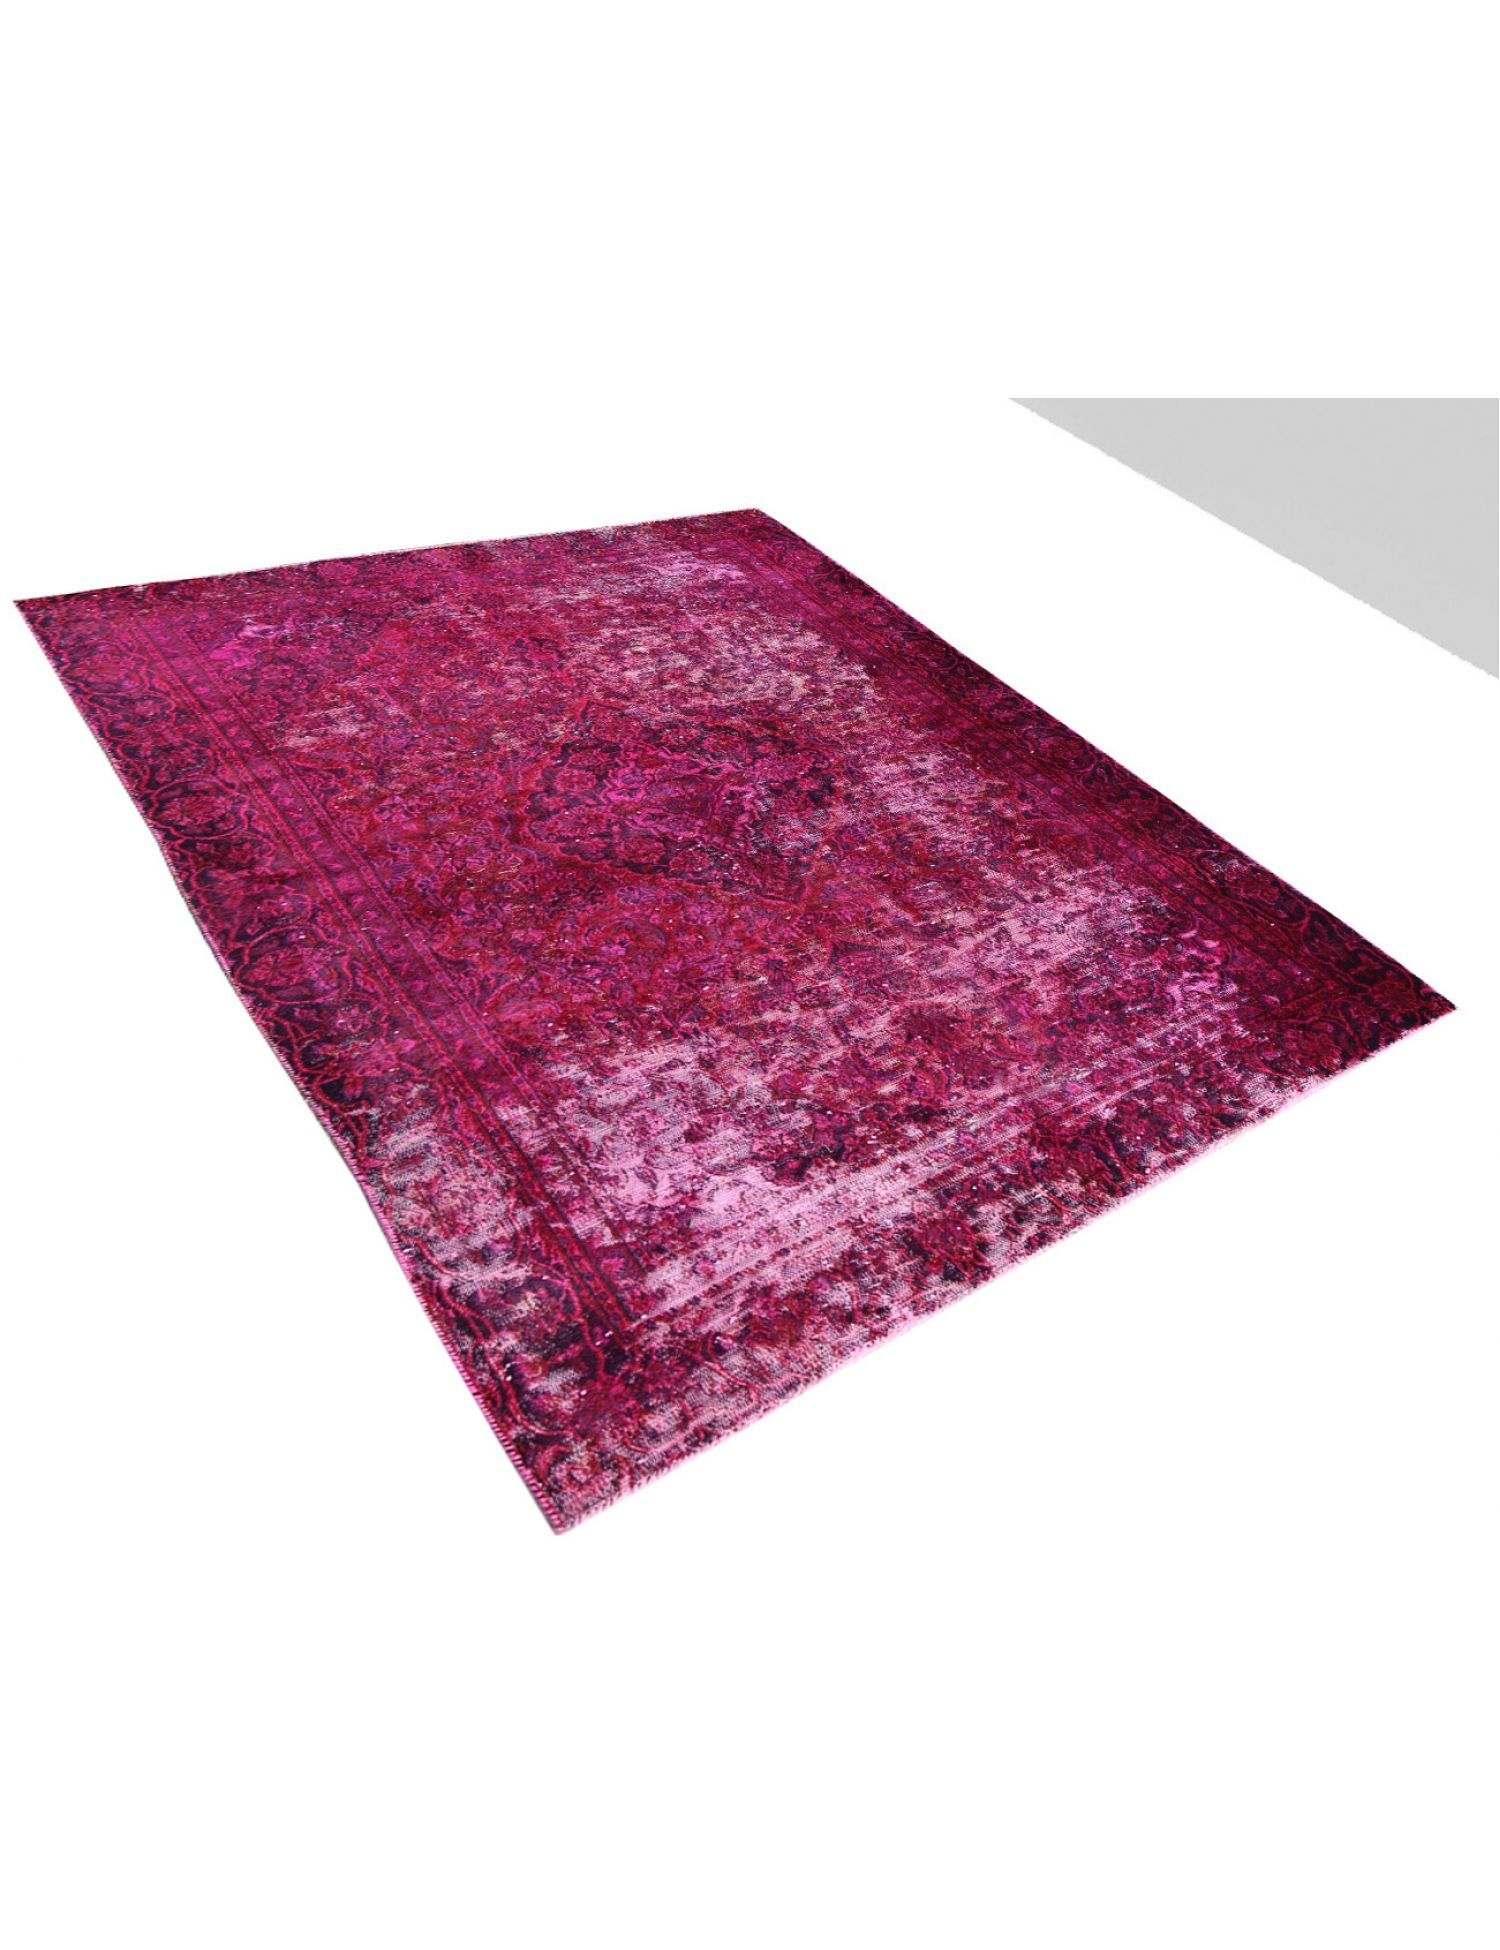 Vintage Carpet  purple <br/>257 x 162 cm